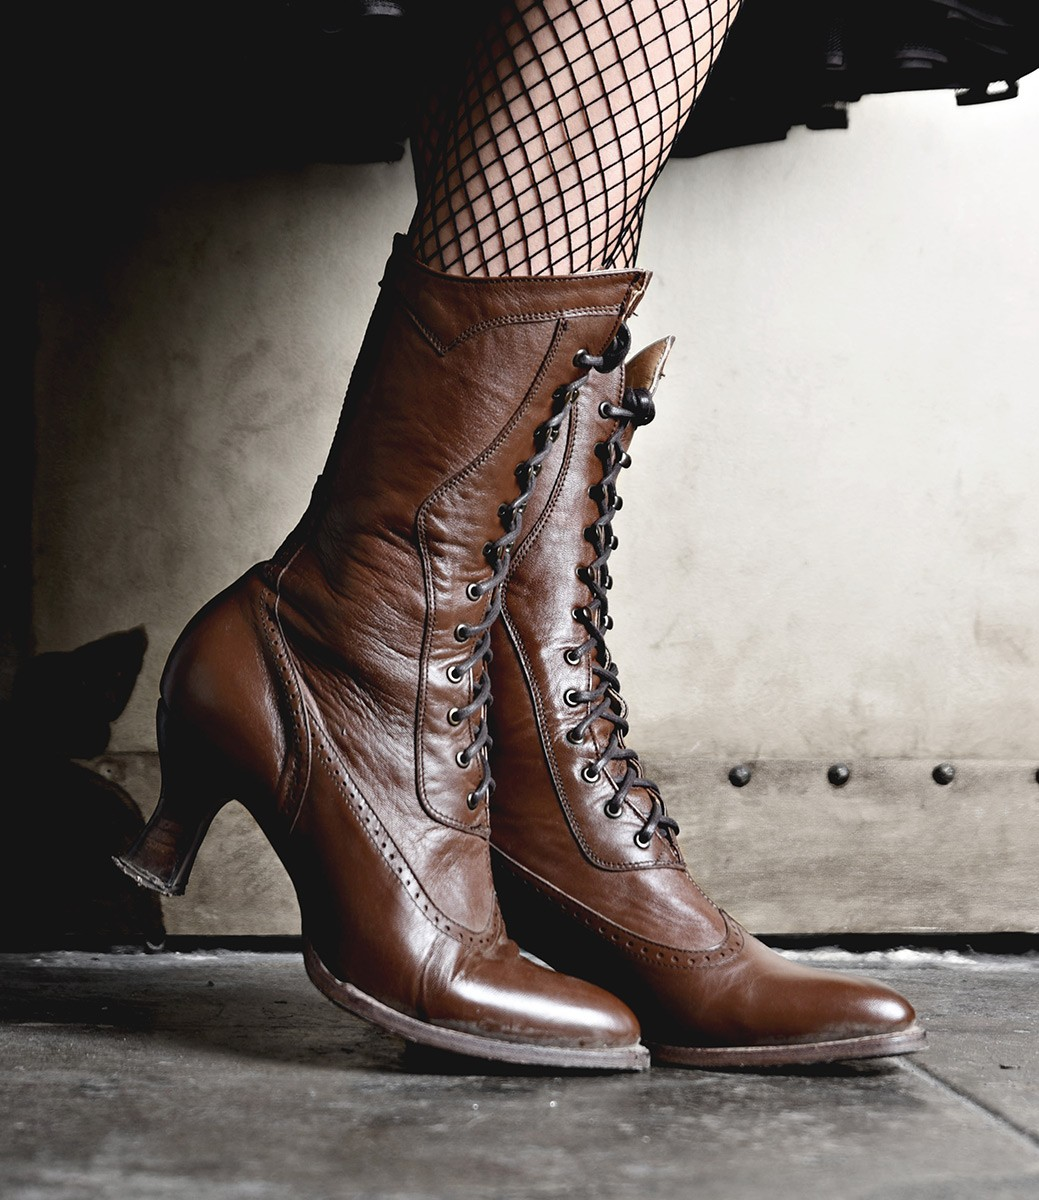 Vintage Boots- Buy Winter Retro Boots Modern Victorian Lace Up Leather Boots in Cognac $255.00 AT vintagedancer.com